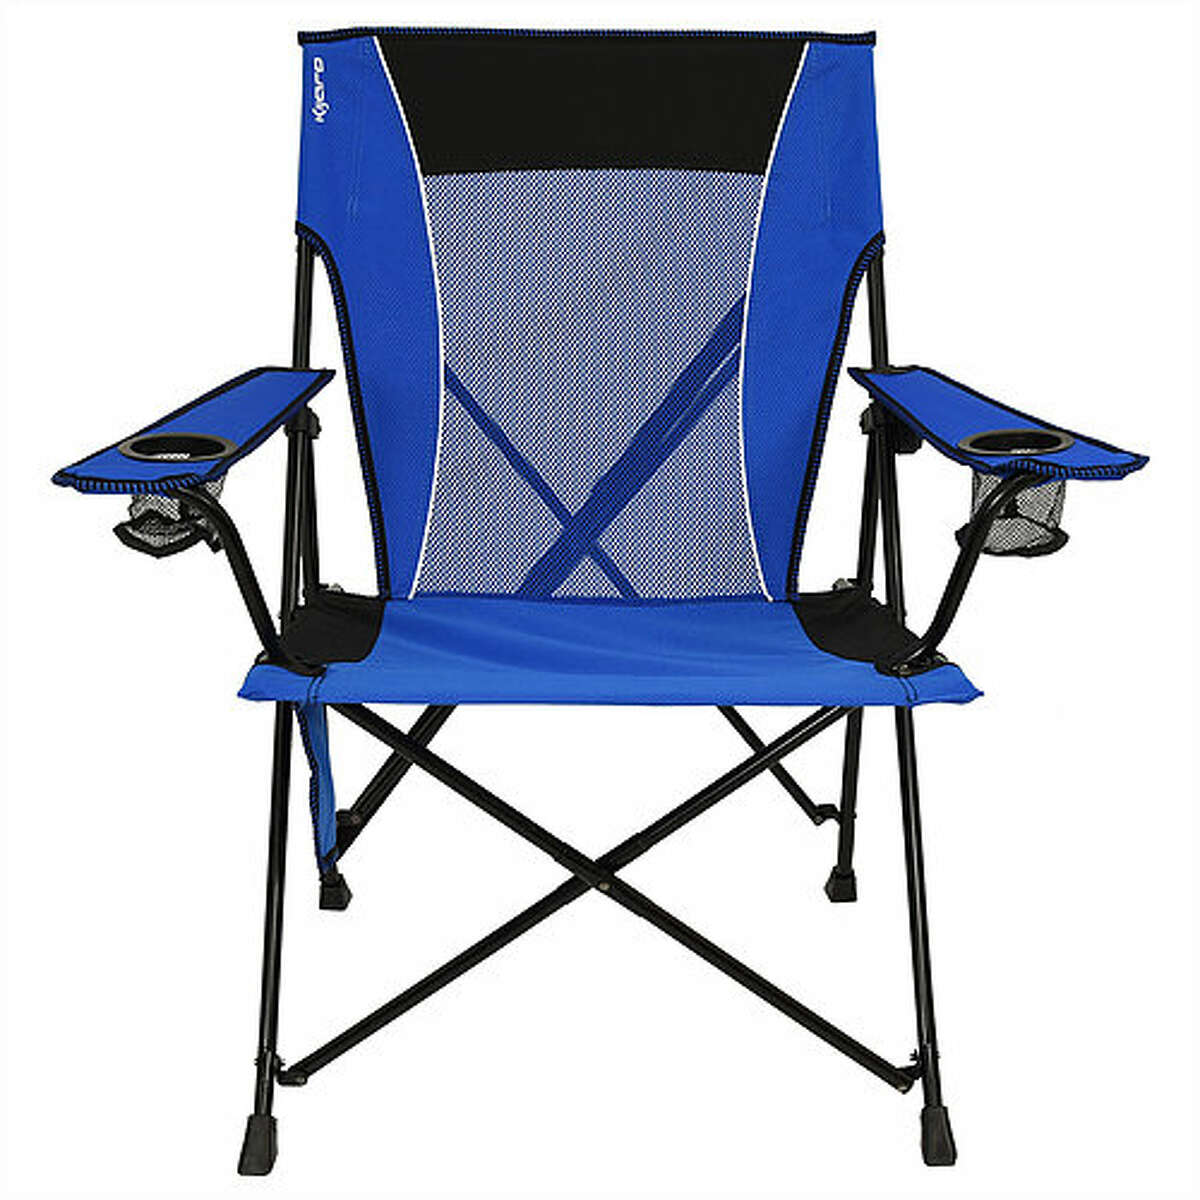 This dual-lock chair from Kijaro (highly rated in places like Amazon) cuts out the sag by locking into place. TO BUY: Sold at most camping goods stores, as well as online. $40. kijaro.com.